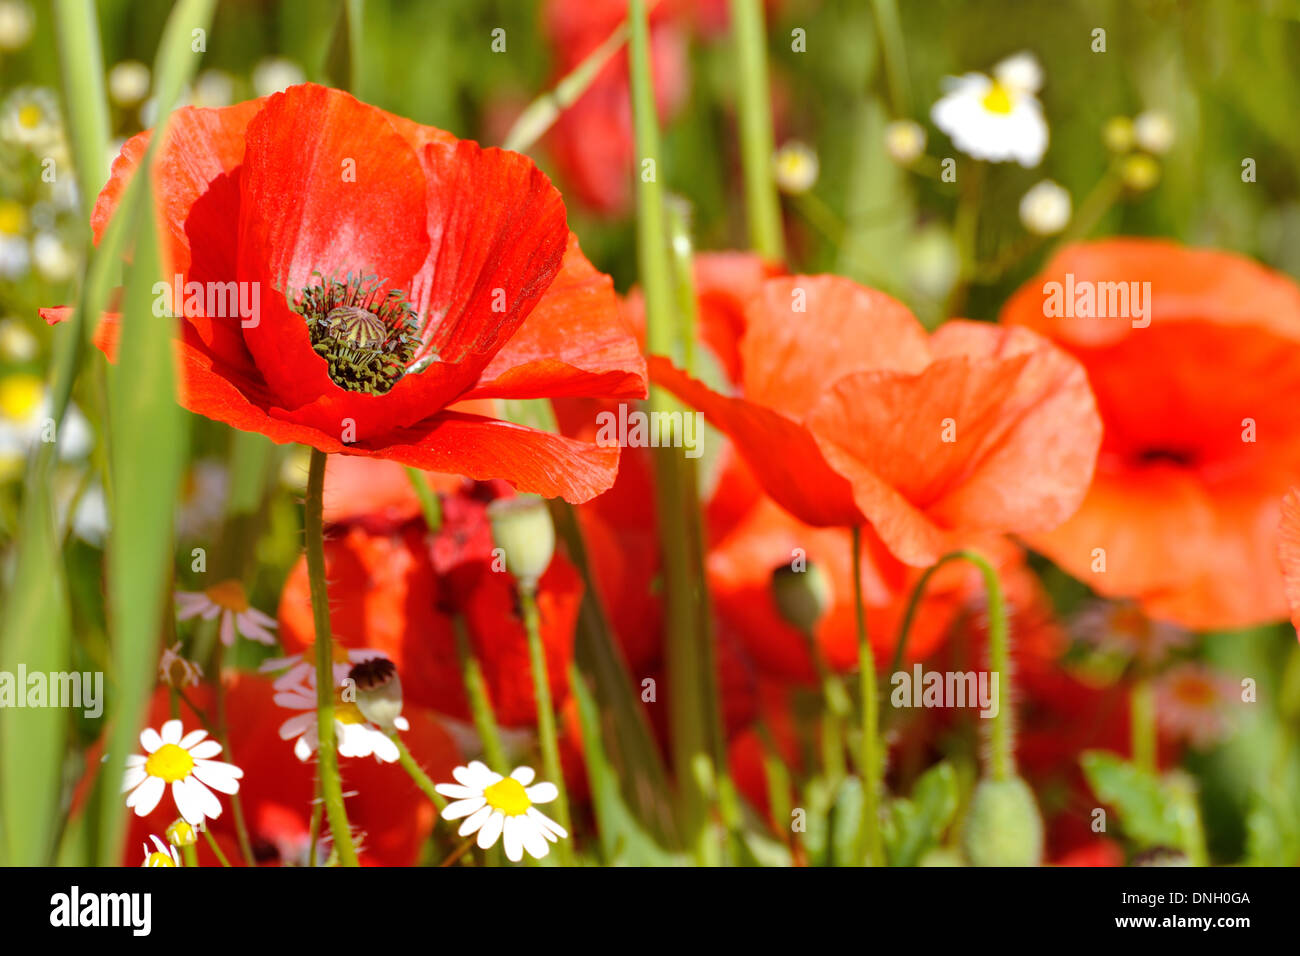 Poppy flower in a field red poppies symbol of remembrance symbol poppy flower in a field red poppies symbol of remembrance symbol of a new summer season buycottarizona